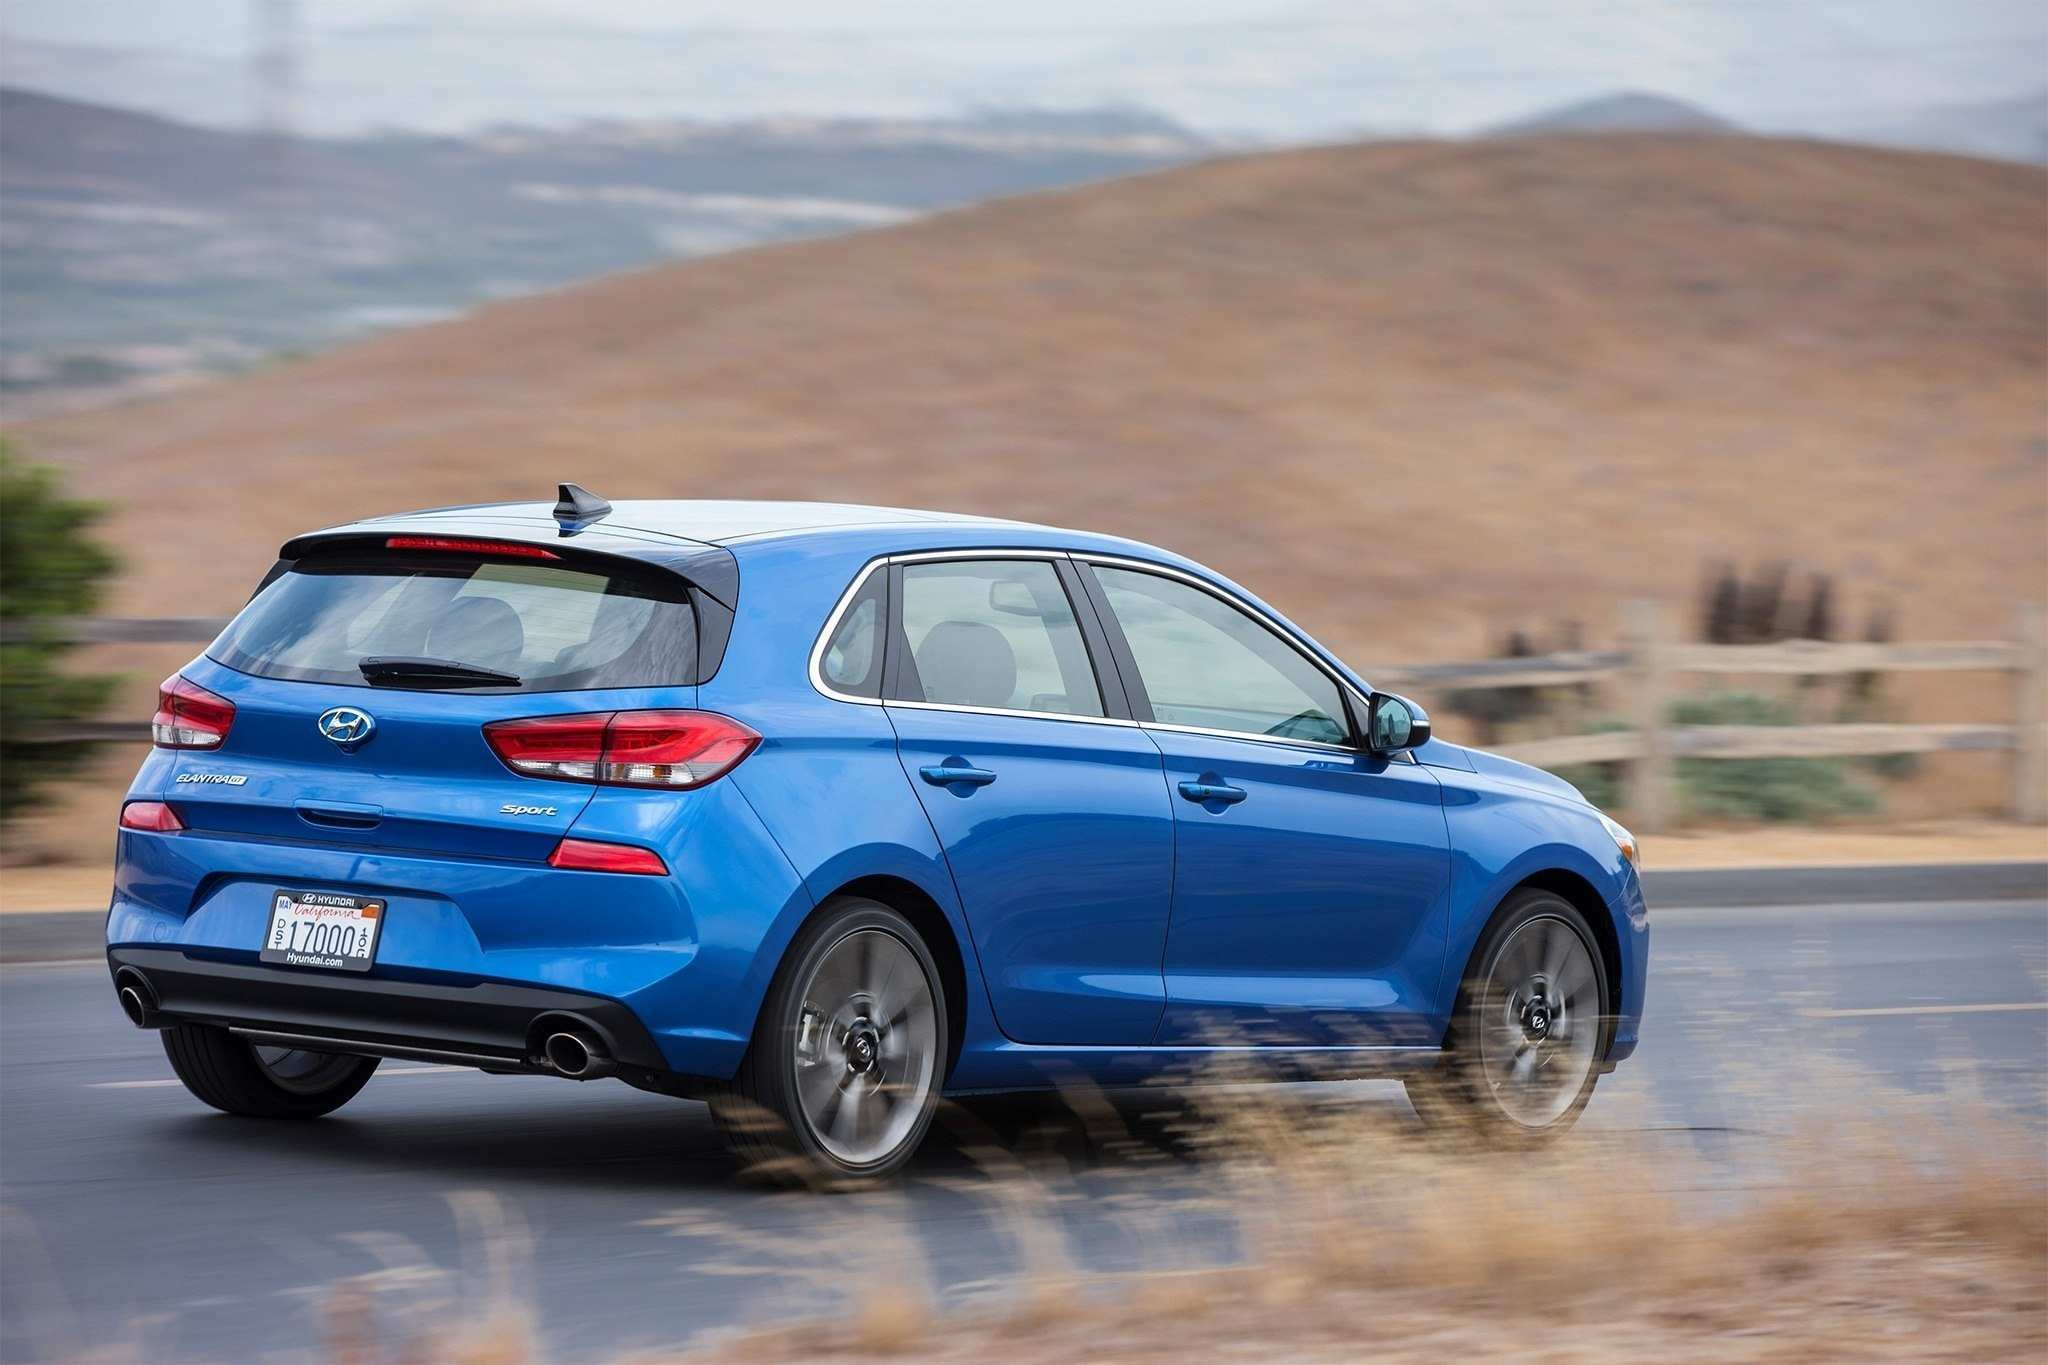 78 The 2020 Hyundai Elantra Gt Performance and New Engine with 2020 Hyundai Elantra Gt